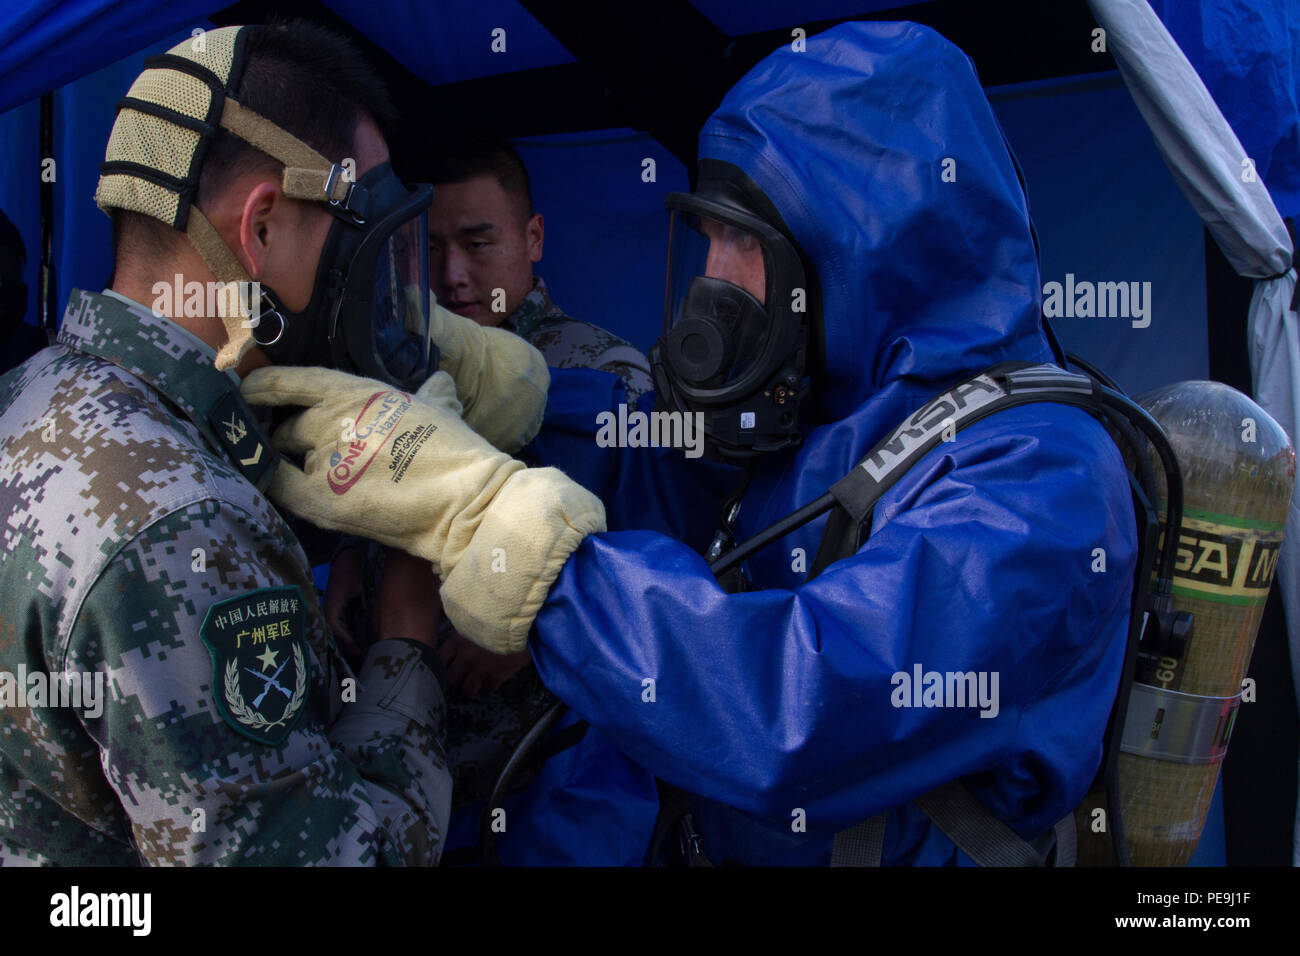 Soldiers with the People's Republic of China People's Liberation Army get some hands-on learning on the use of decontamination equipment used by the U.S. forces during emergency and disaster relief efforts as part of the Disaster Management Exchange held at Joint Base Lewis-McChord, Wash., Nov. 20, 2015. The DME is an opportunity to share humanitarian aid and disaster relief lessons learned from real-world events and hopes to improve U.S. and Chinese dialog for HA/DR events in the future. - Stock Image